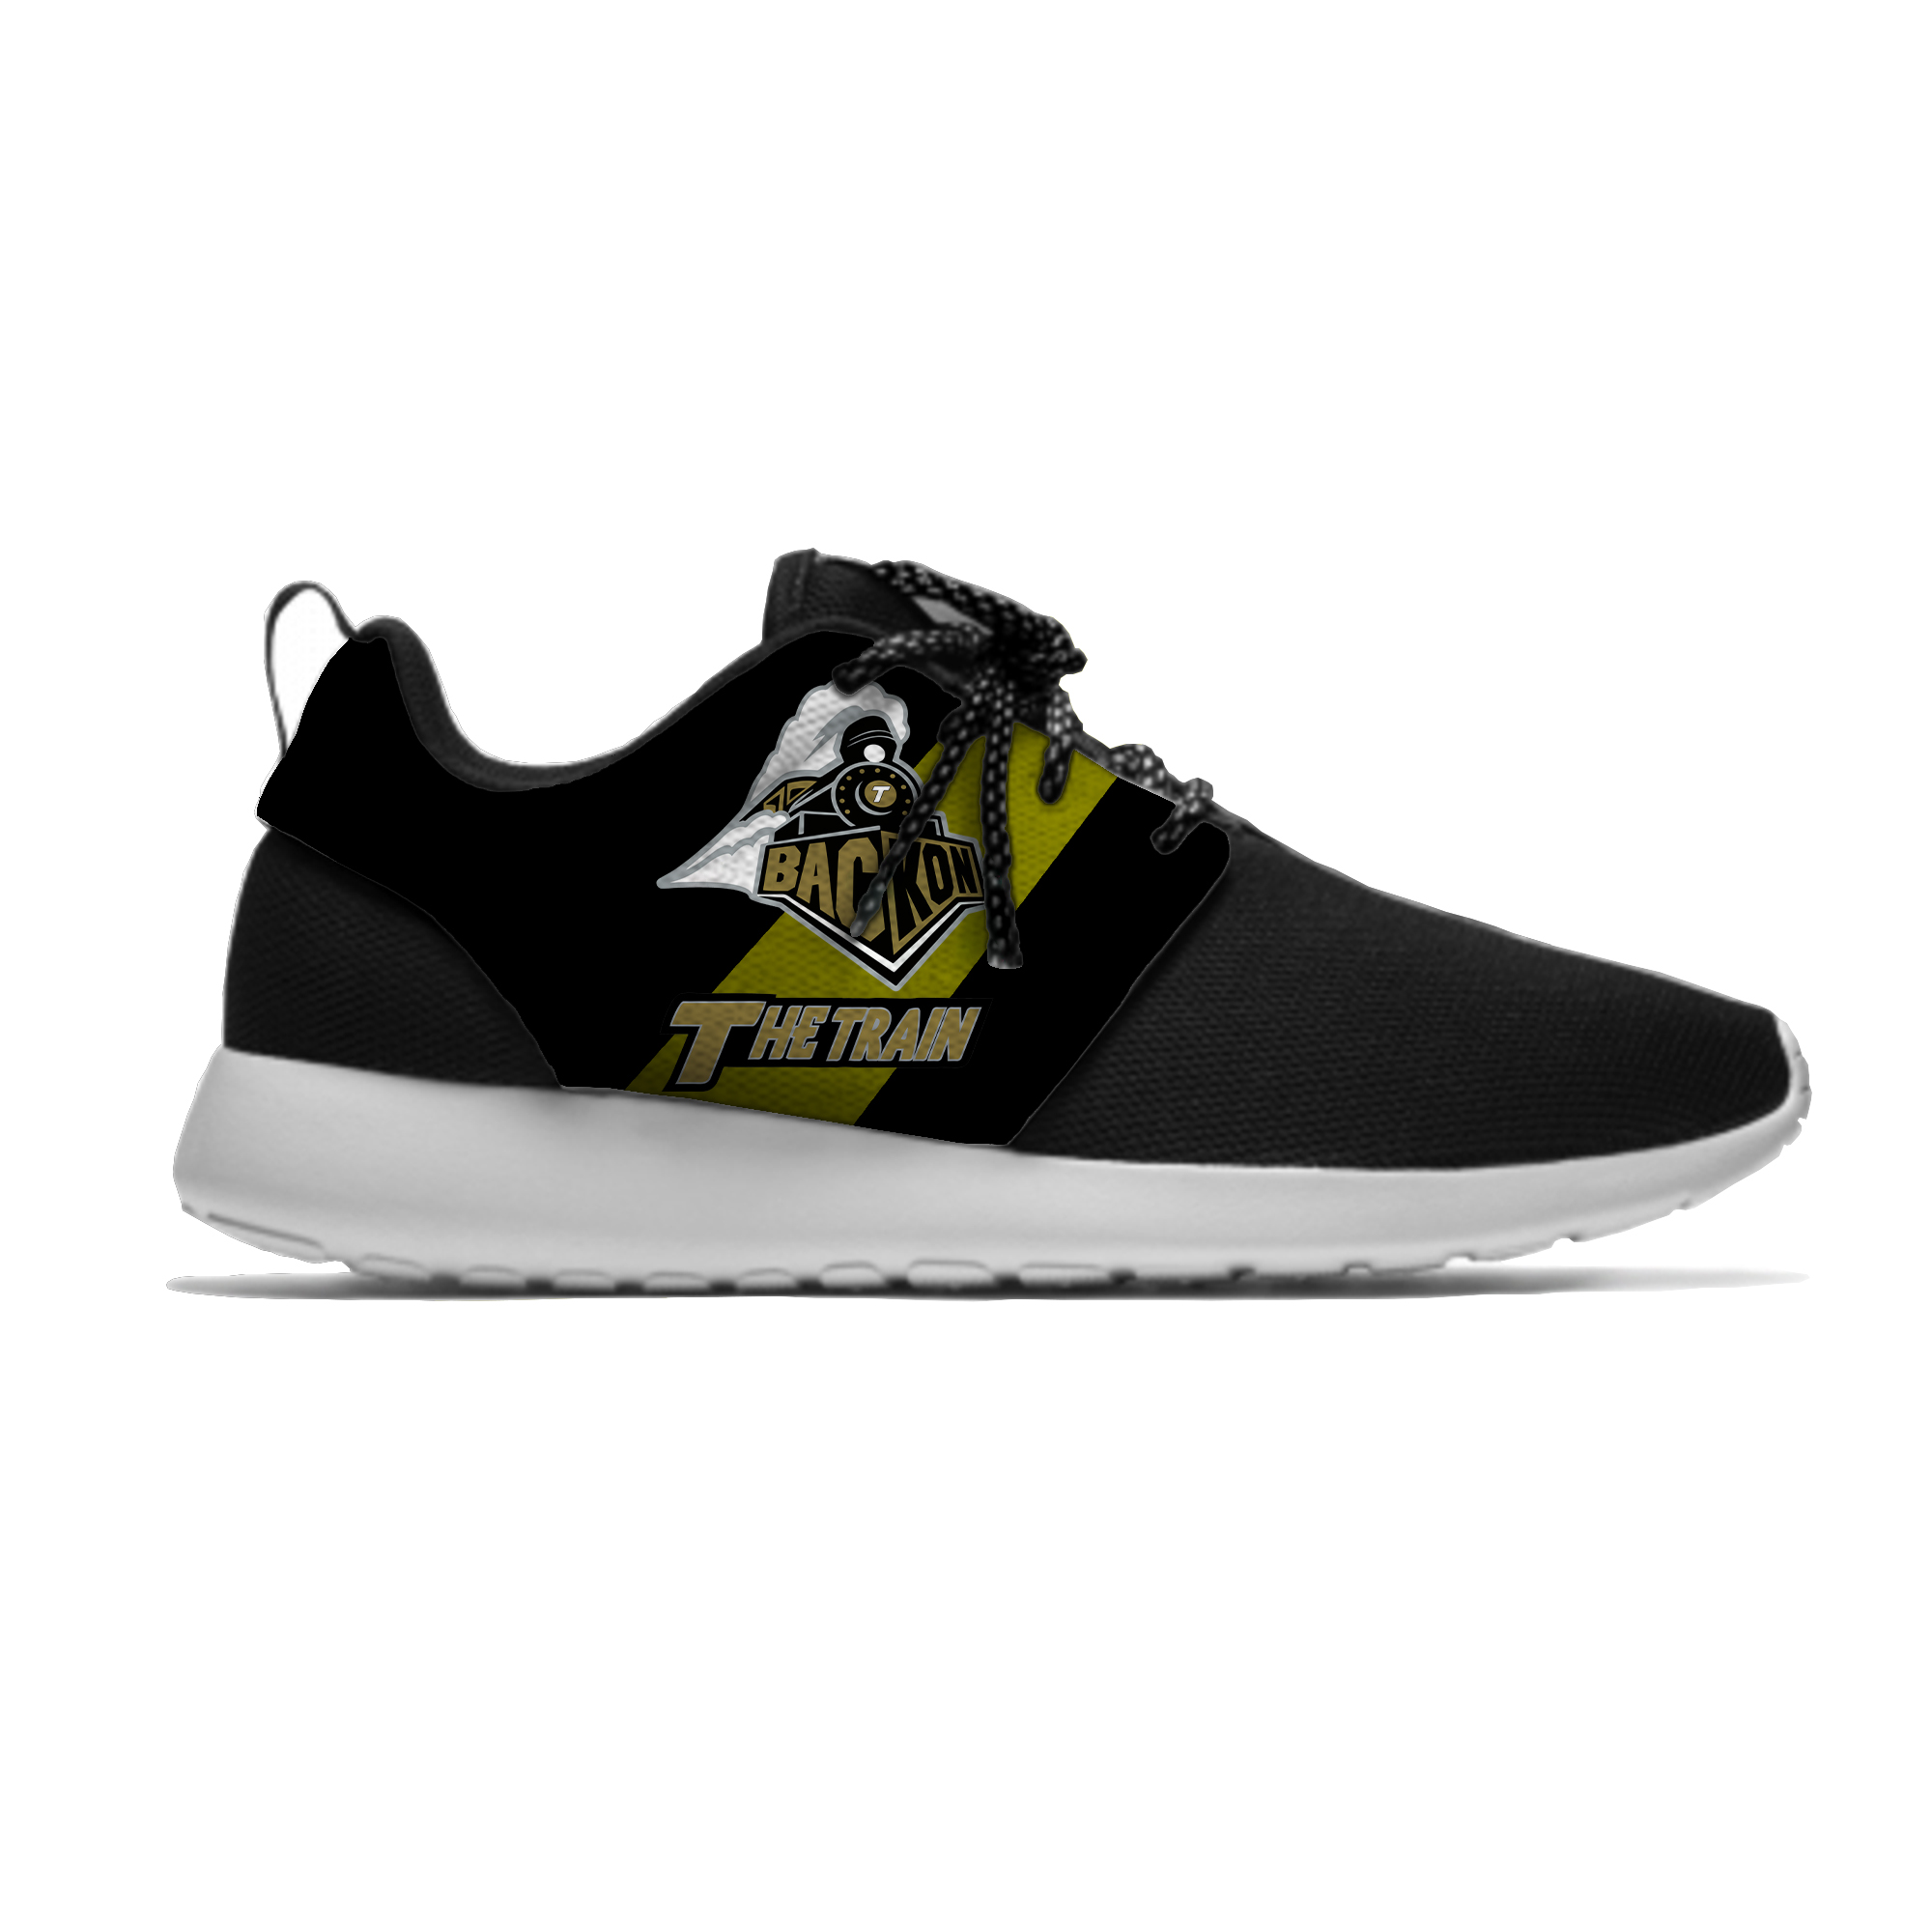 Men's/Women's Breathable Running Purdue Shoes University Sport Meshy Shoes Casual Lightweight Sneakers(China)